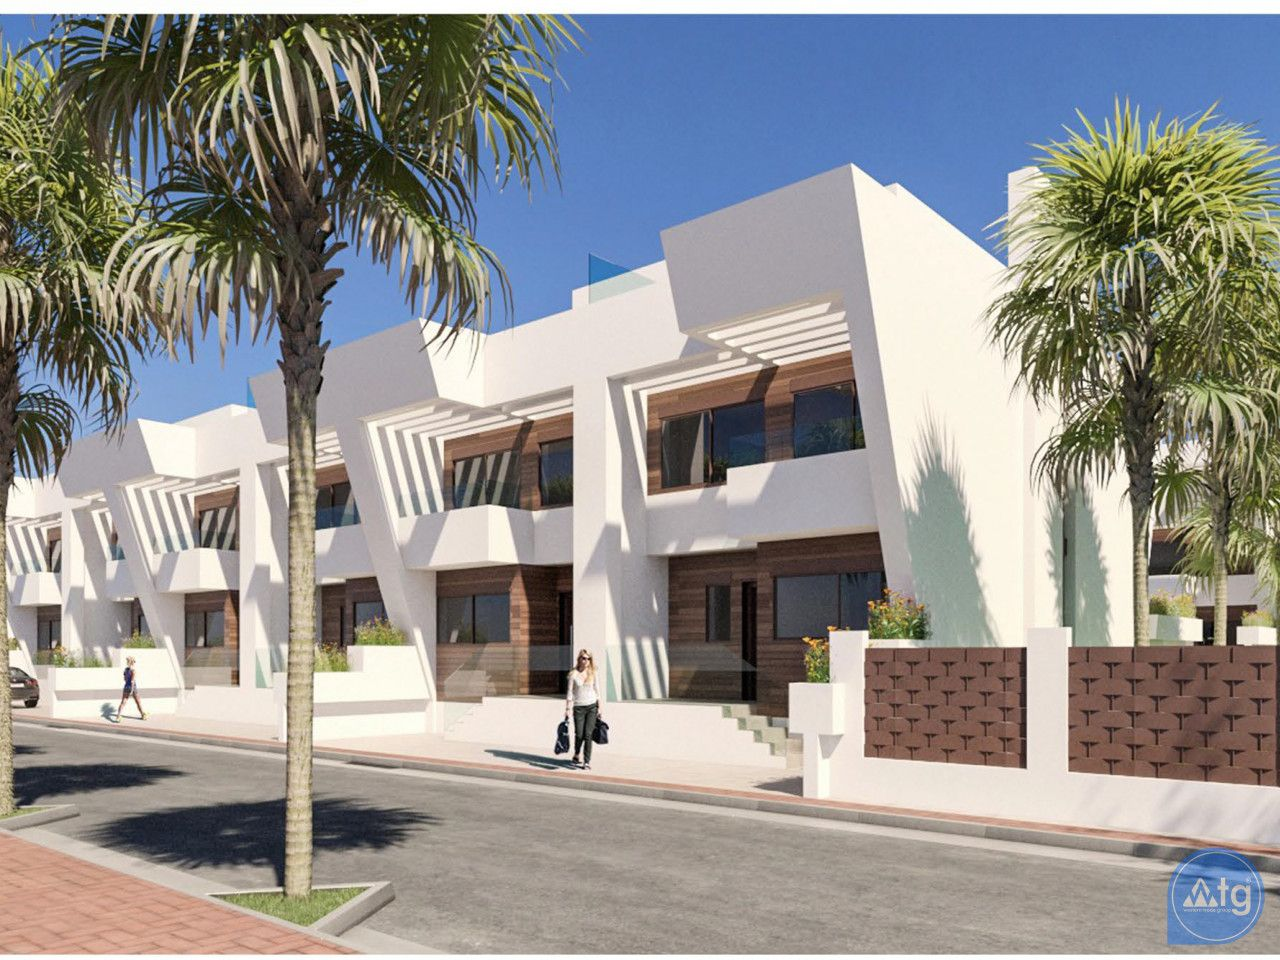 Piano terra in Centro. Elite duplex in sant joan d'alacant, 3 bedrooms, 108 m2 - ahs119